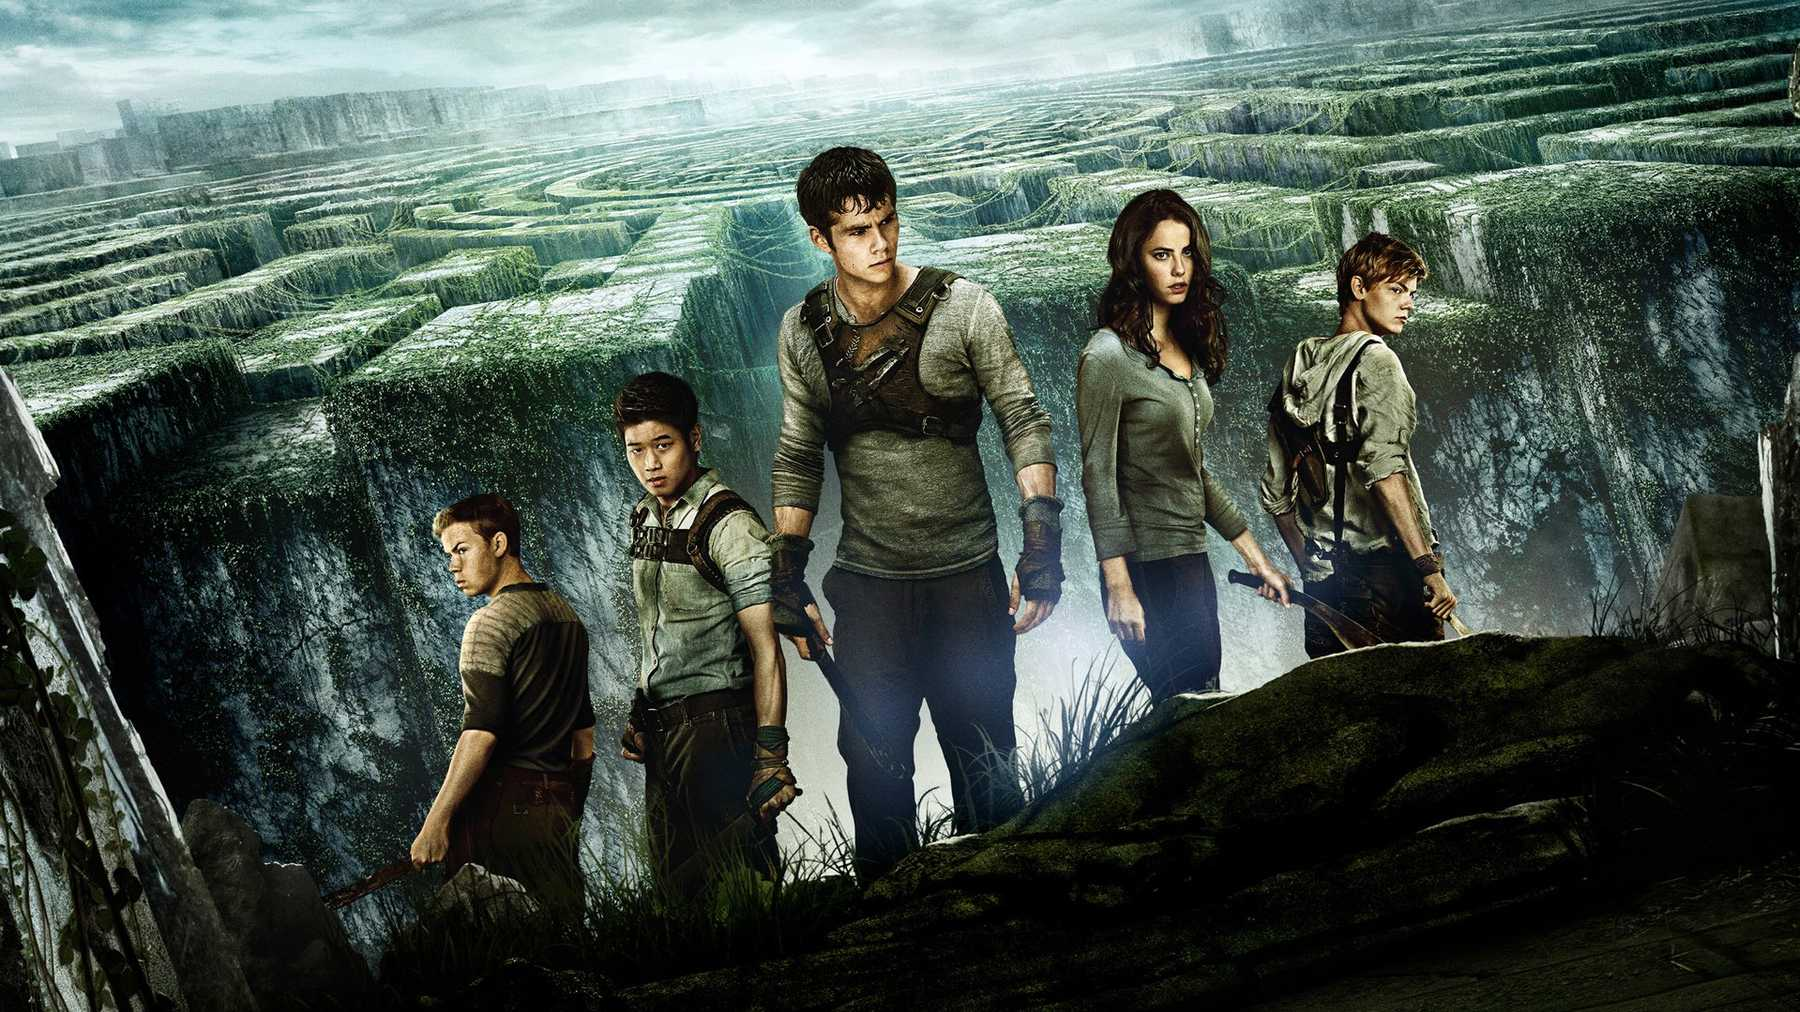 Maze Runner 4: The Kill Order update, Plot, Cast and All You Need To Know